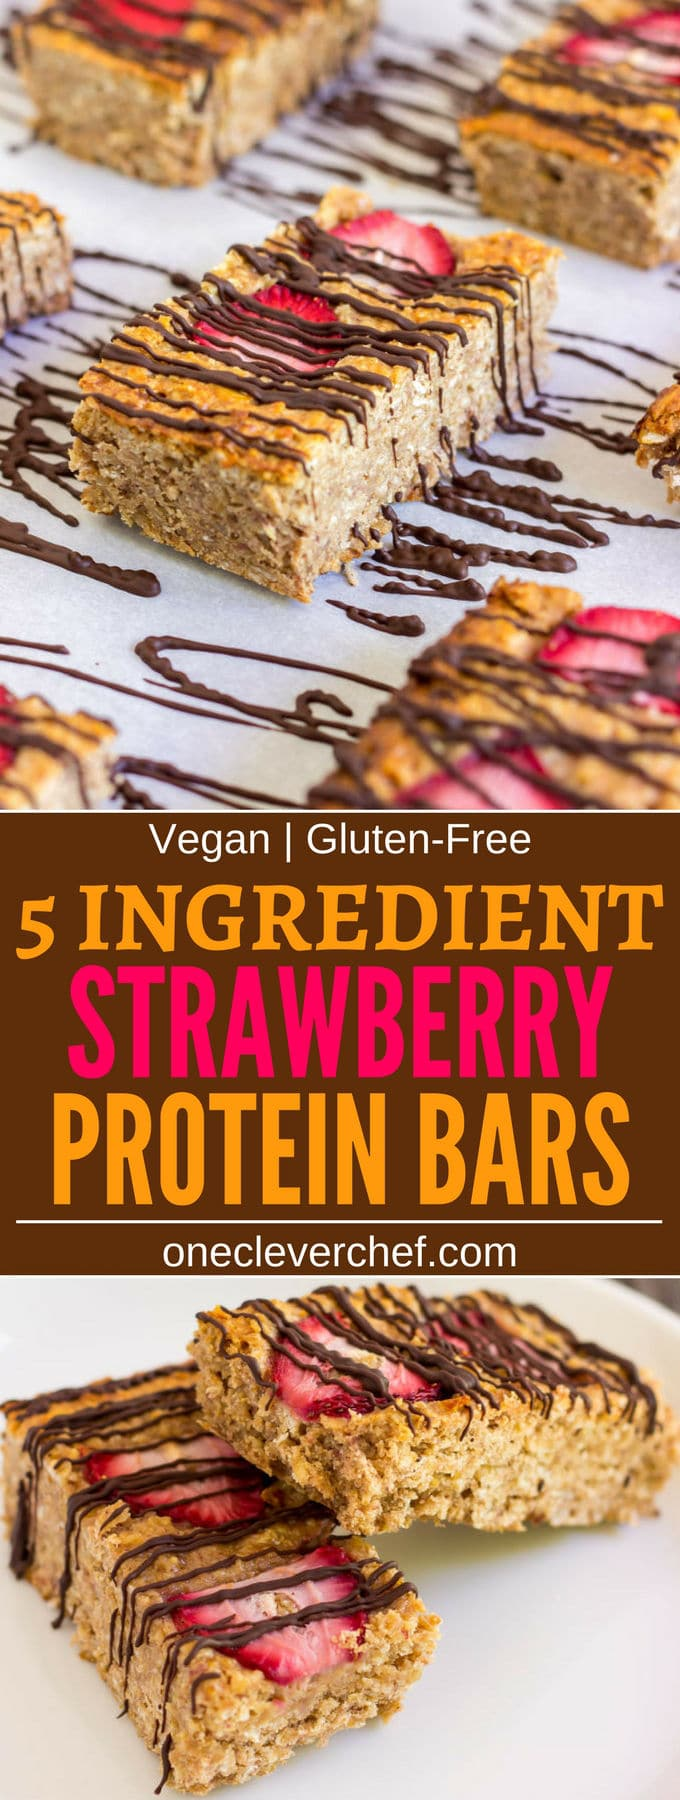 These healthy strawberry protein bars are made with only 5 ingredients. Convenient and quick, this delicious snack packs a lot of nutrients and is guaranteed to fill you up until lunch on a busy day. Vegan, Gluten-Free, Dairy-free and flourless these bars are friendly to most popular diet trends.   www.onecleverchef.com